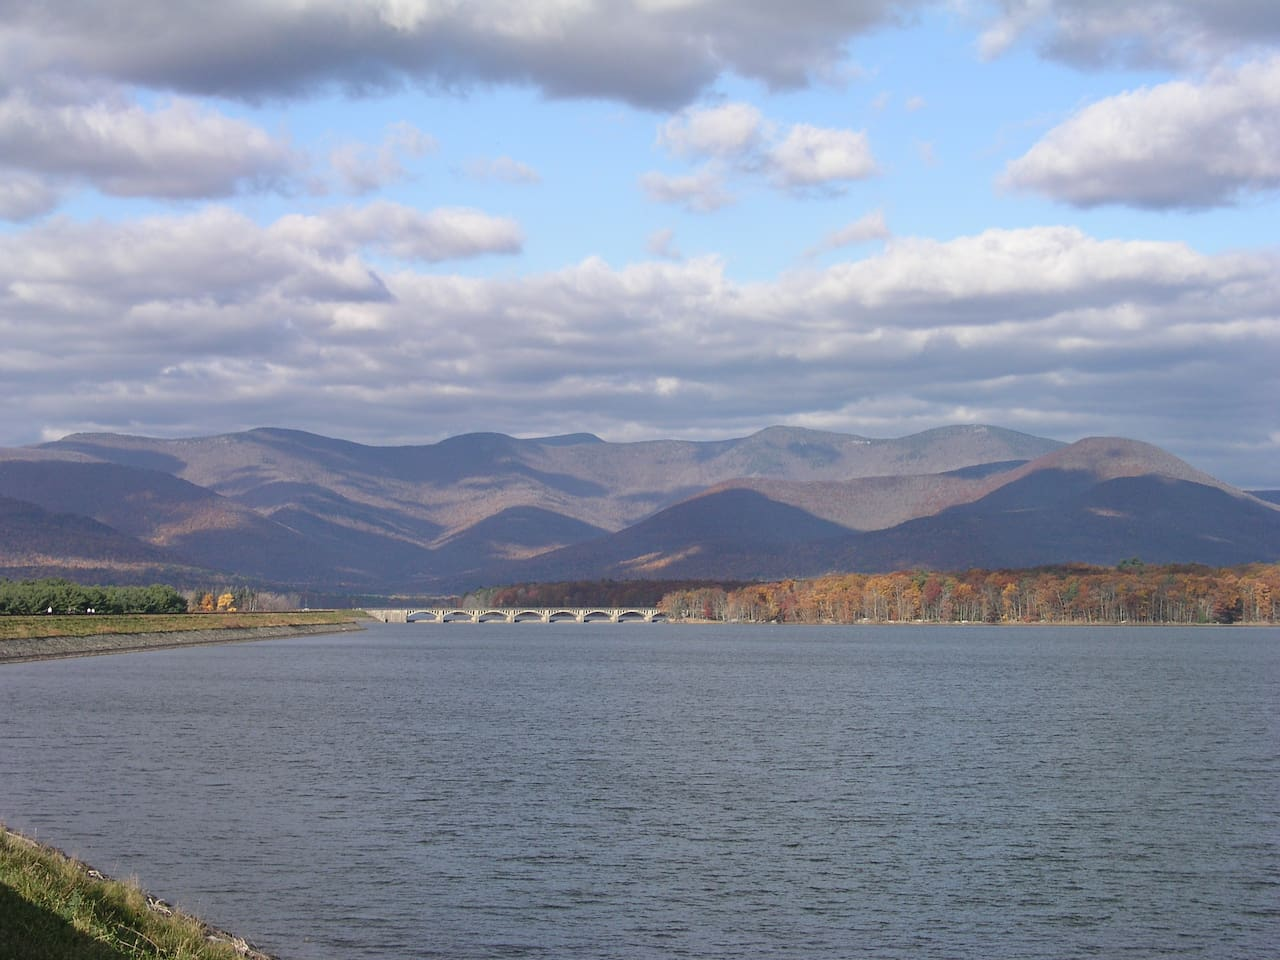 The Neareby Ashokan Reservoir